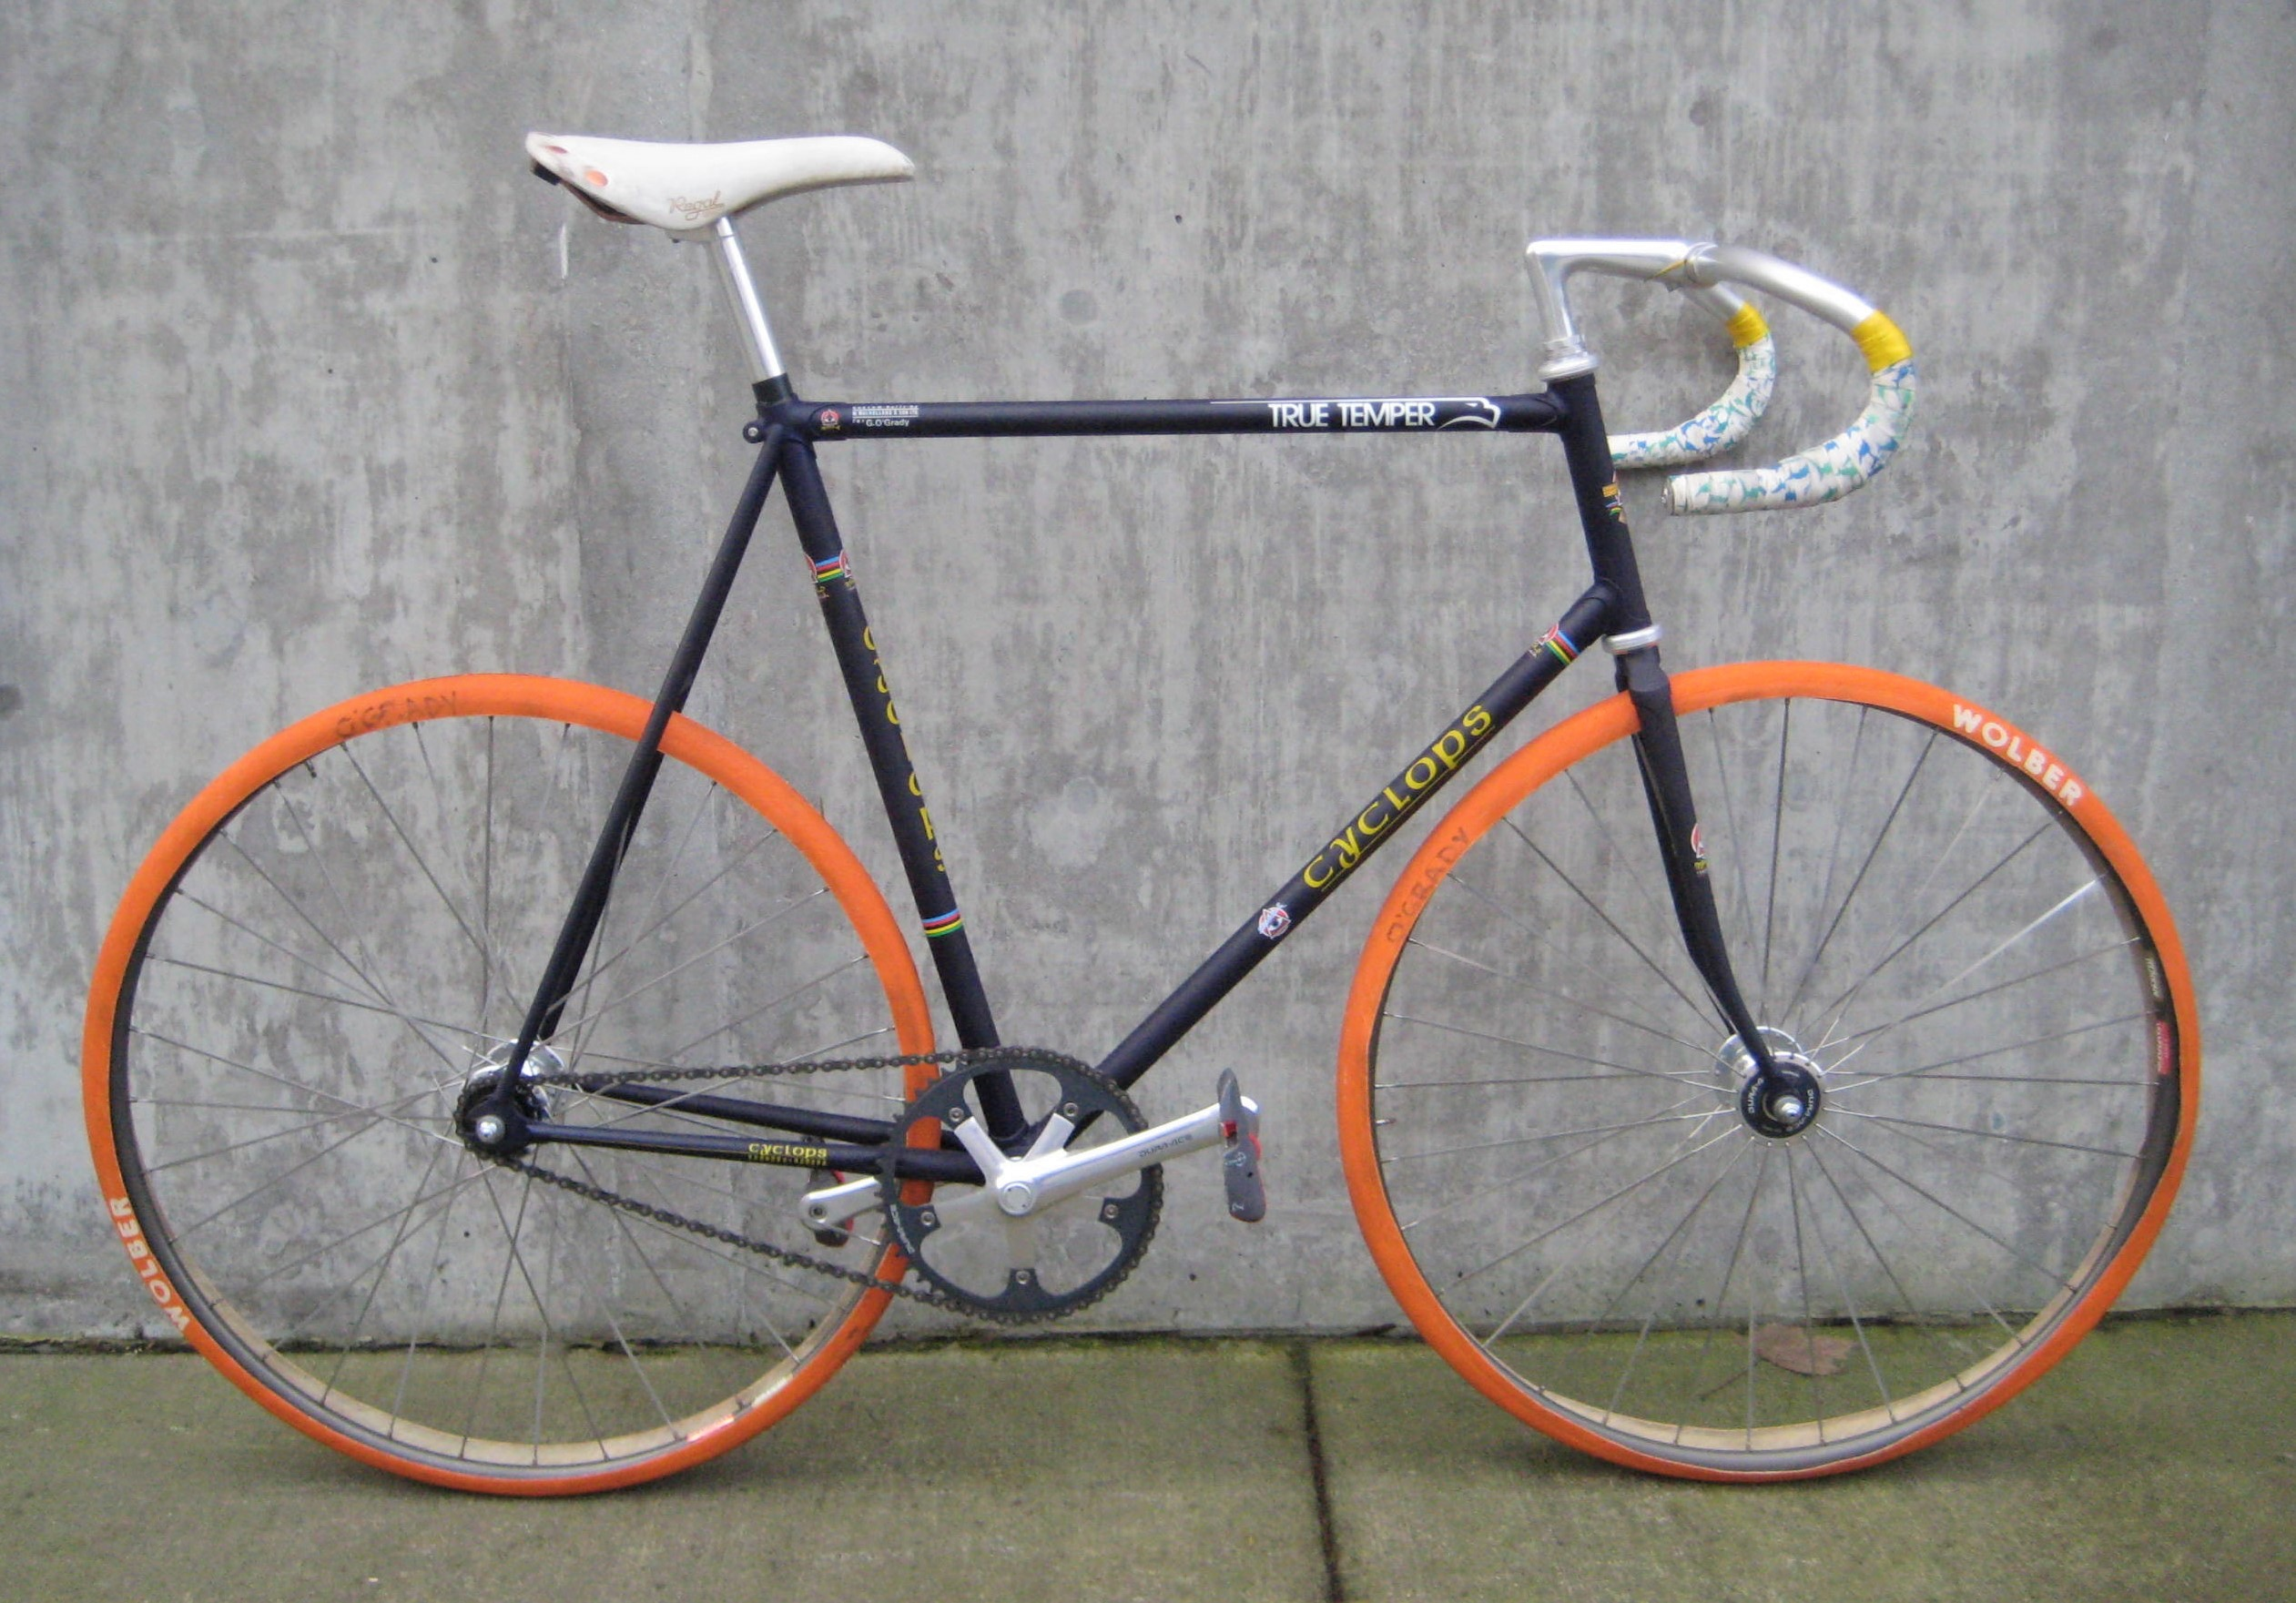 Gavin O Grady S 1988 Cyclops Track Bike Classic Cycle Bainbridge